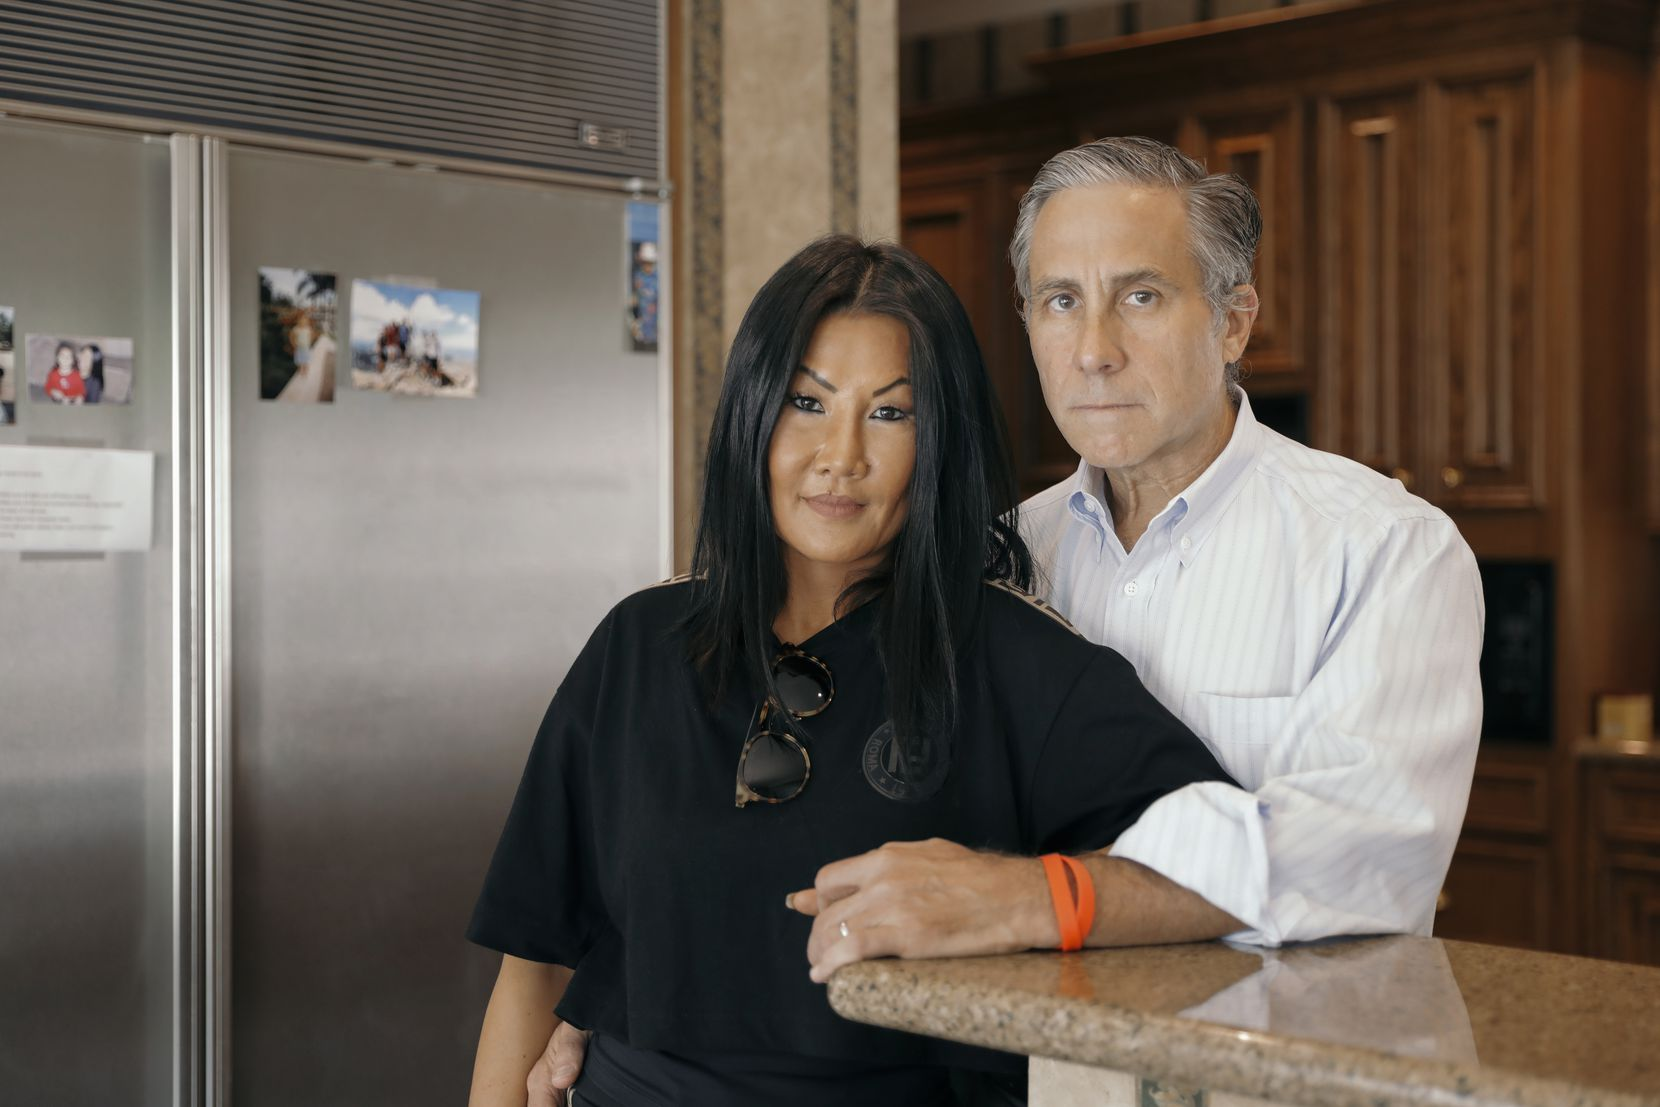 Sylvia Wang and her husband, Shawn Cumberland, at their home in Houston, Texas, on Saturday, October 19th, 2019. Their son, Nicky Cumberland, a member of the elite Texas Cowboys fraternity, died Oct. 30, 2018, from injuries sustained a month earlier on his way home from the Texas Cowboys' annual retreat.